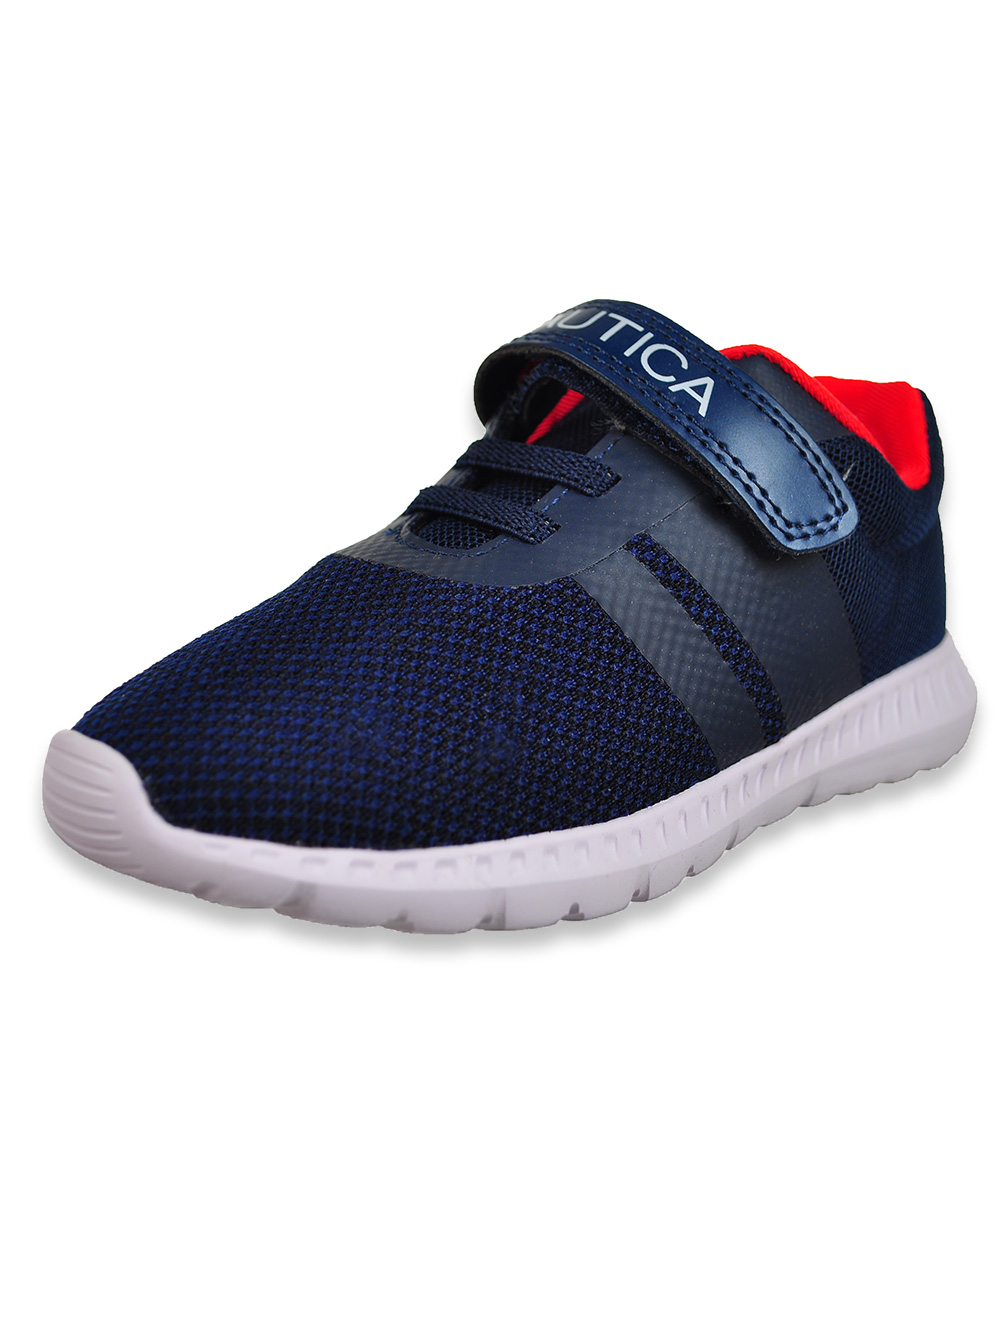 Boys' Hook-and-Loop Strap Running Sneakers